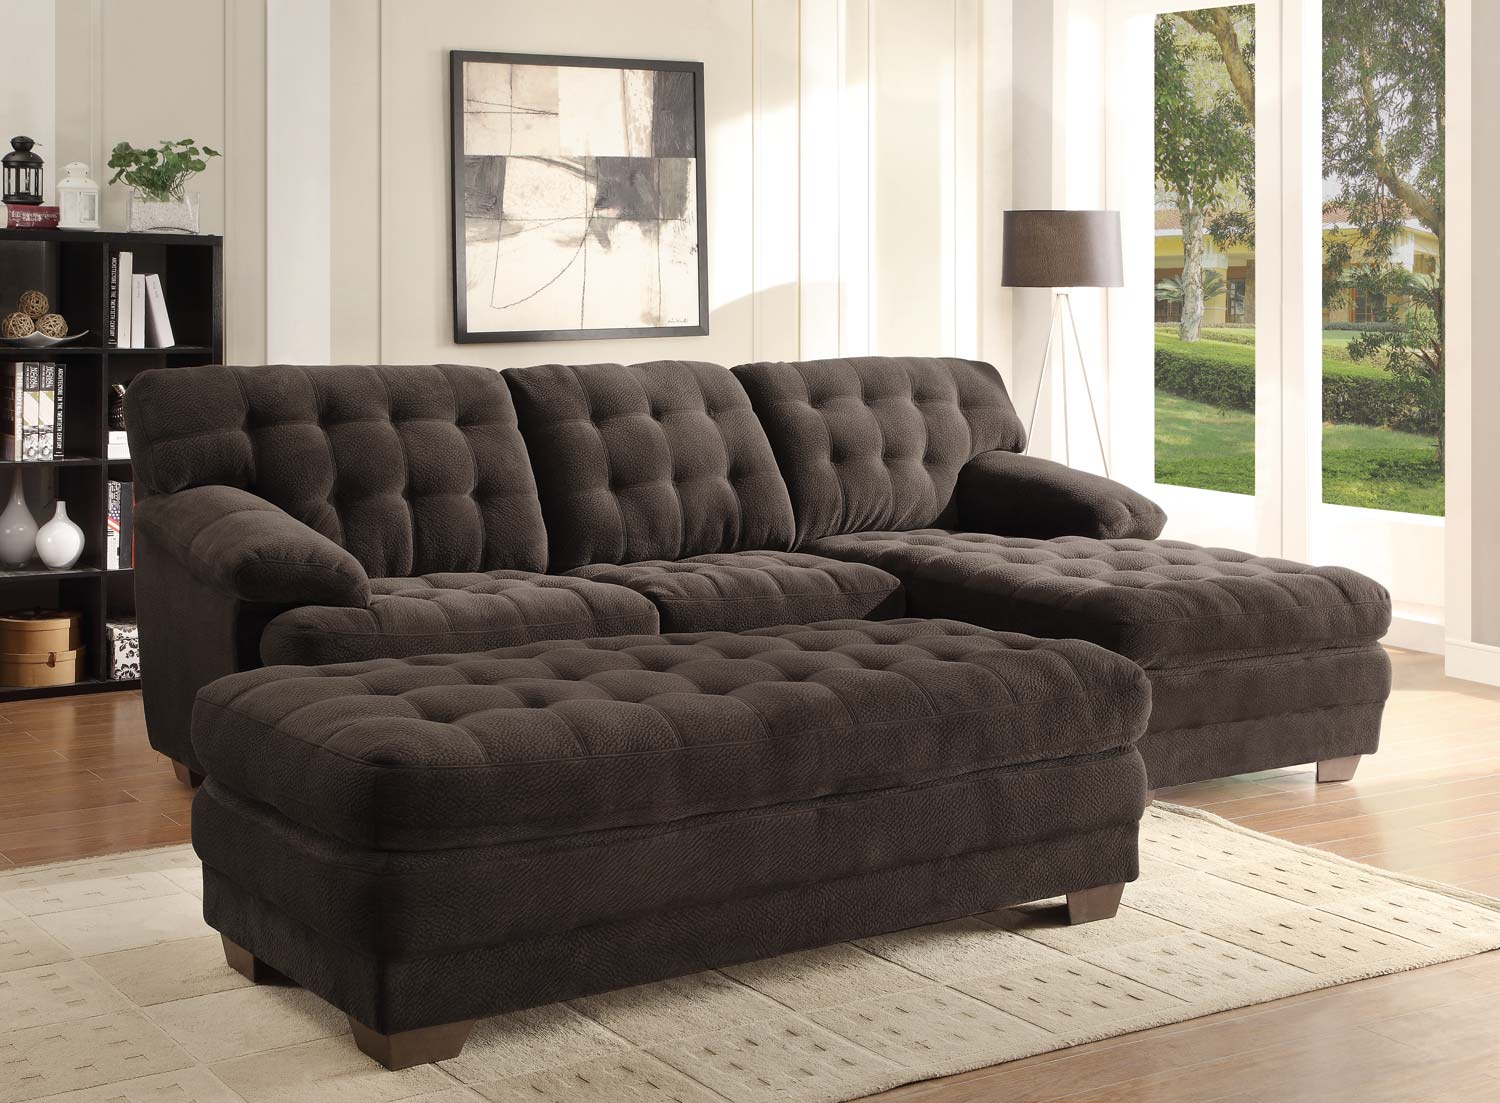 Homelegance Brooks Sectional Sofa Set Chocolate